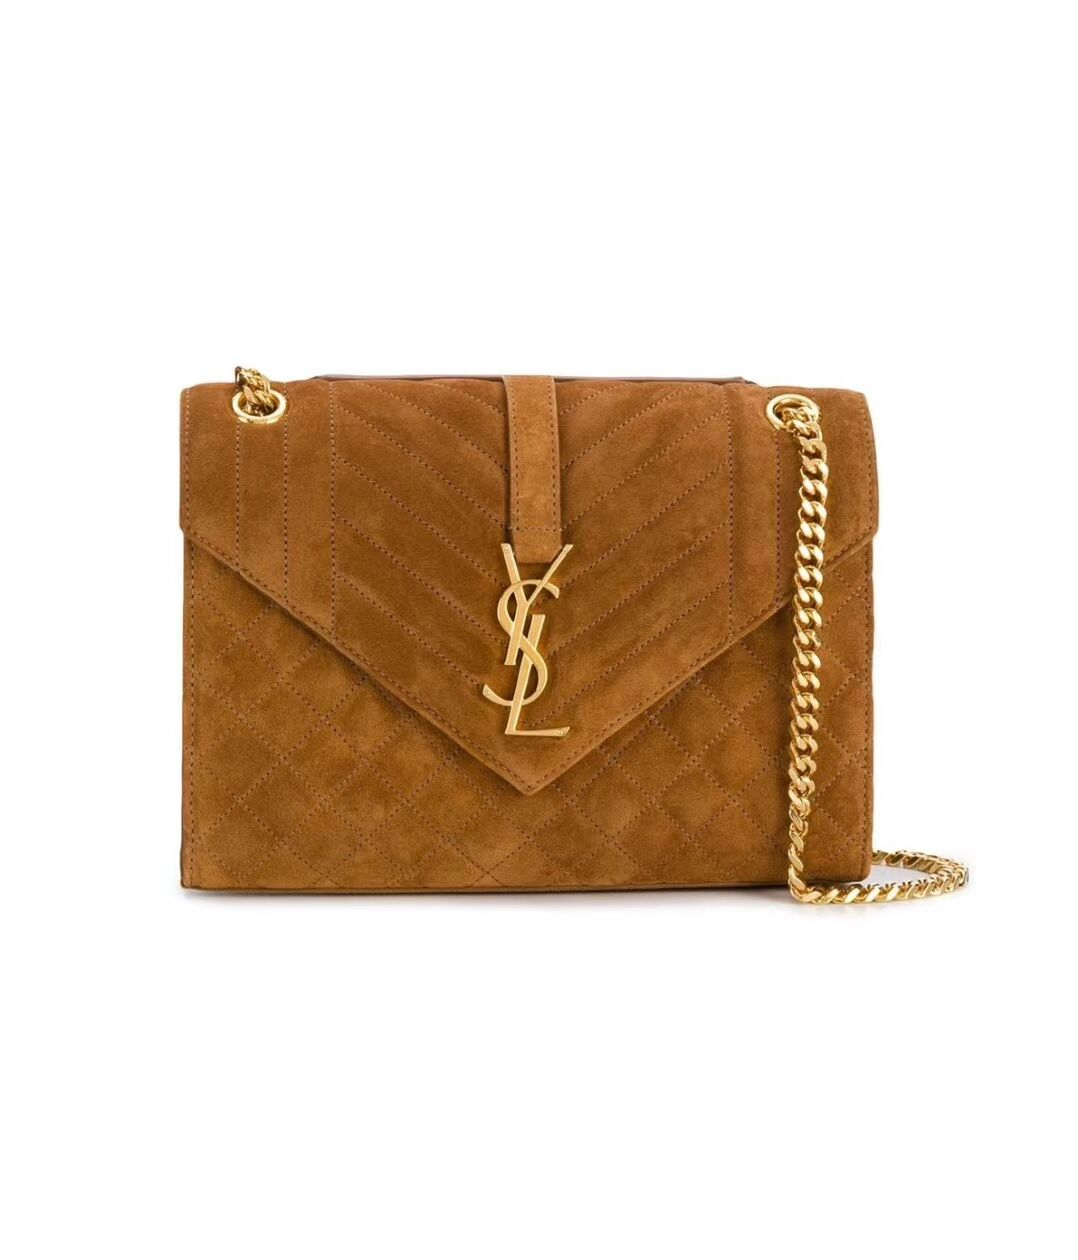 YSL ENVELOPPE MEDIUM BAG IN MIX MATELASSE GRAIN DE POUDRE EMBOSSED IN SUEDE Y487206 brown